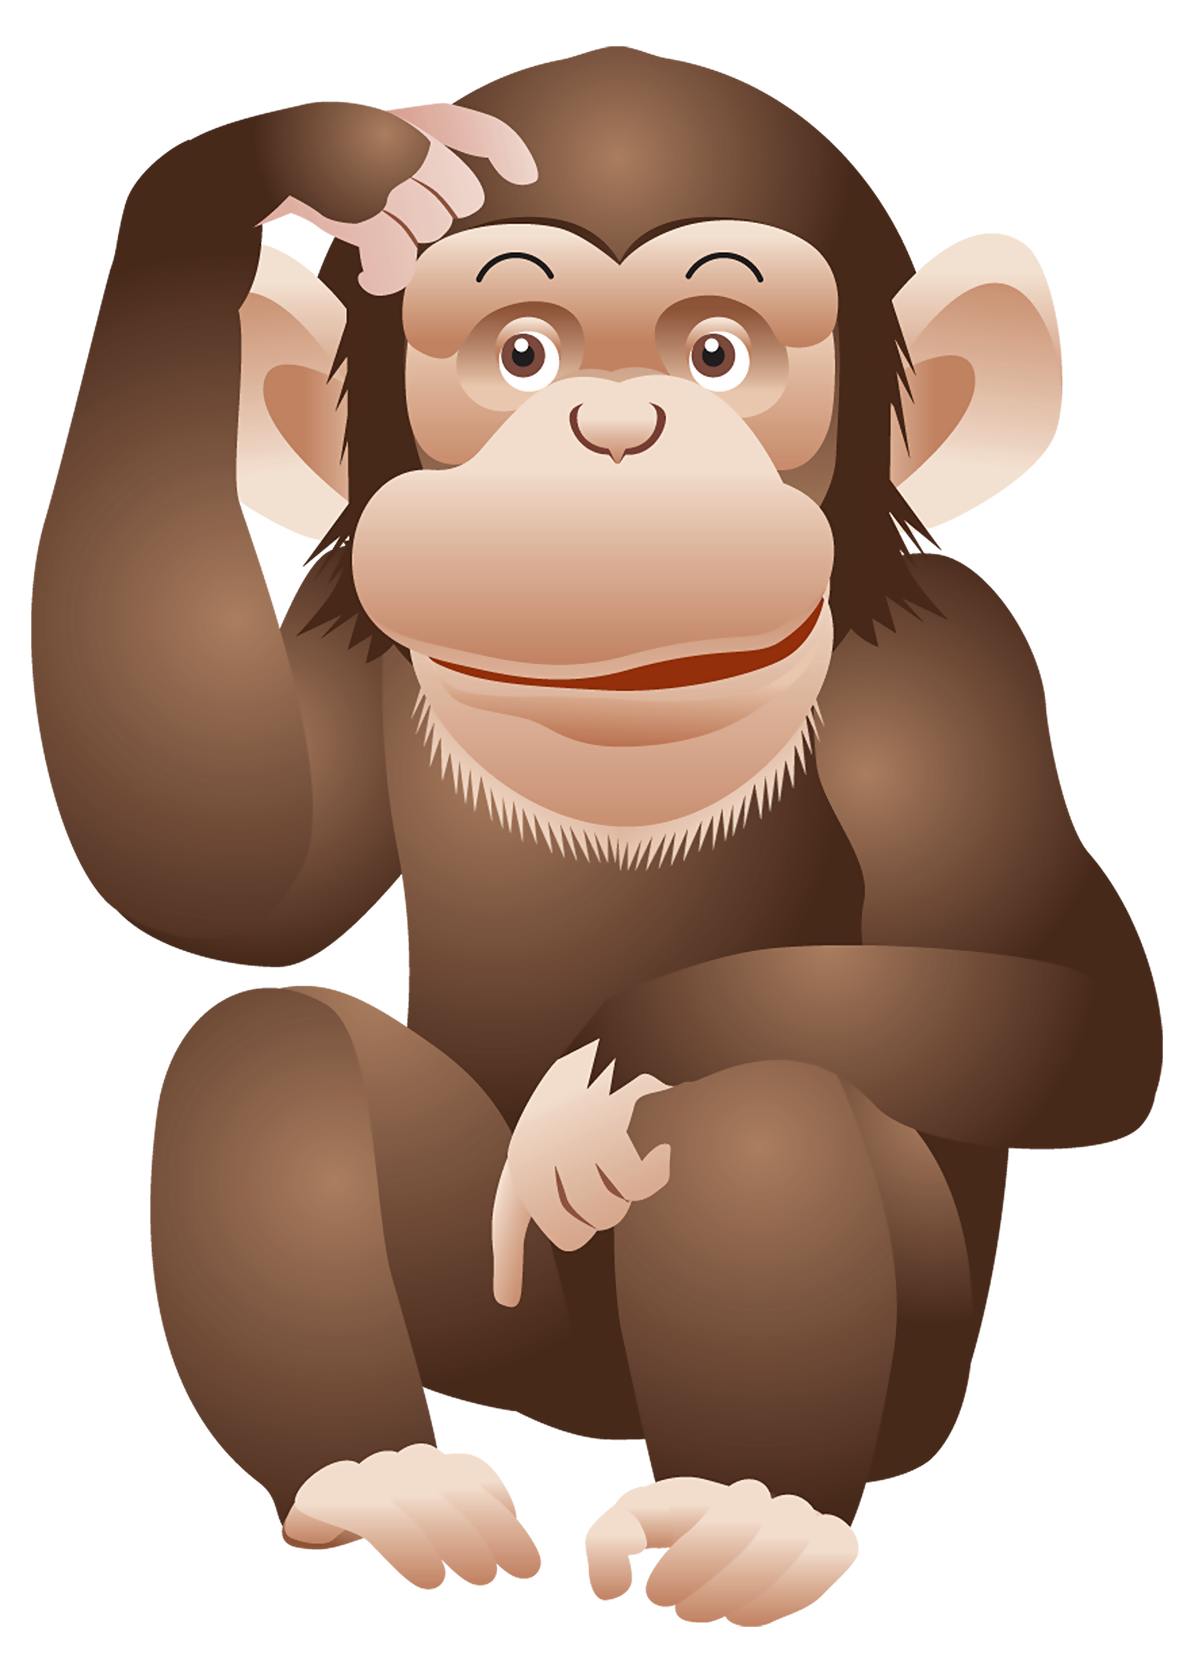 Monkey png image gallery. Monkeys clipart transparent background